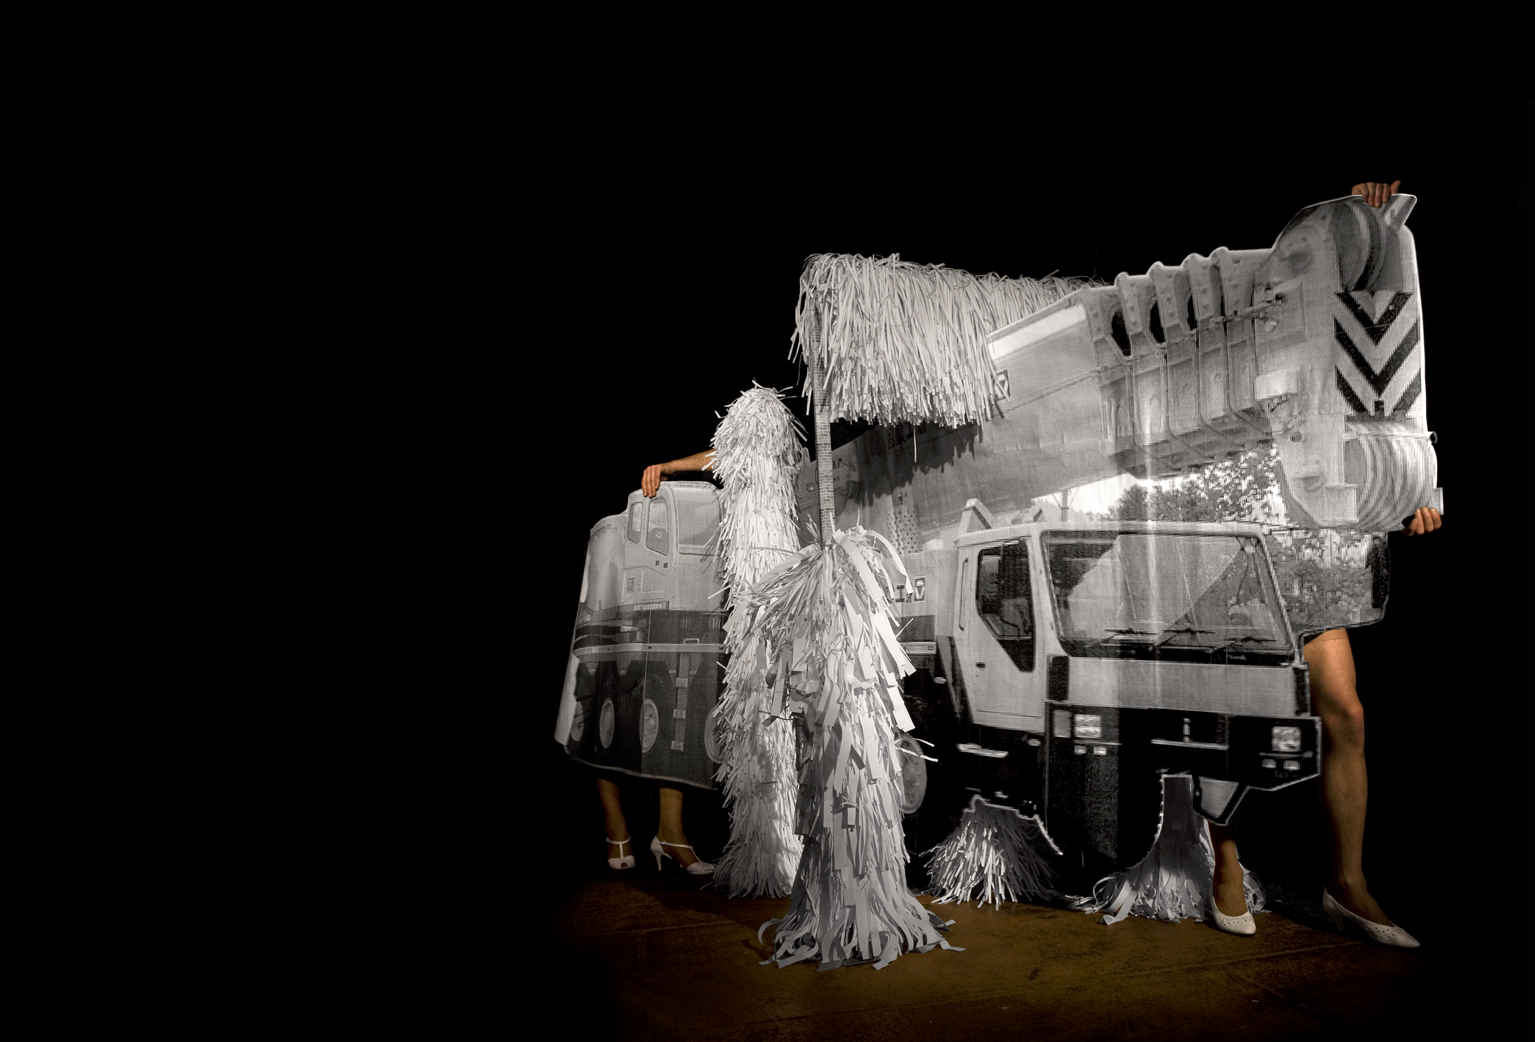 dry clean (truck), 31x23 inches